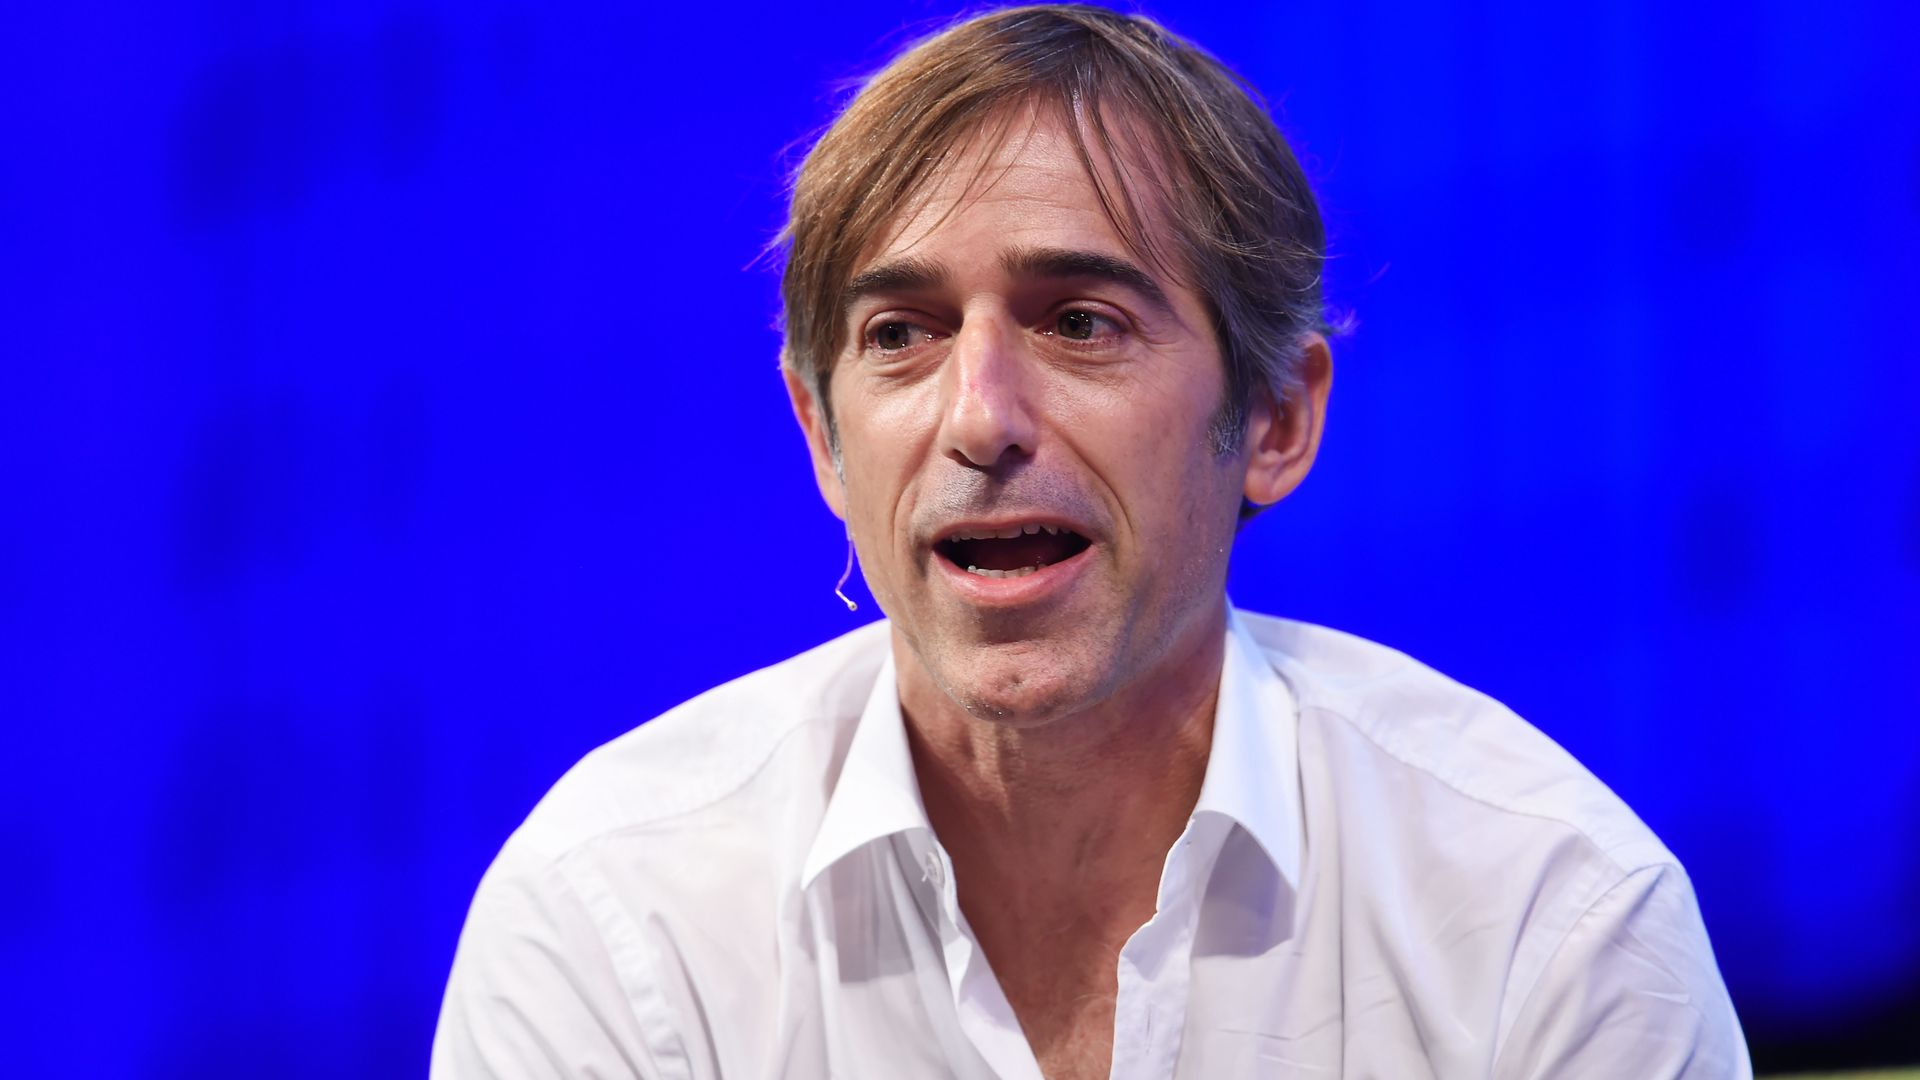 Mark Pincus sitting on stage